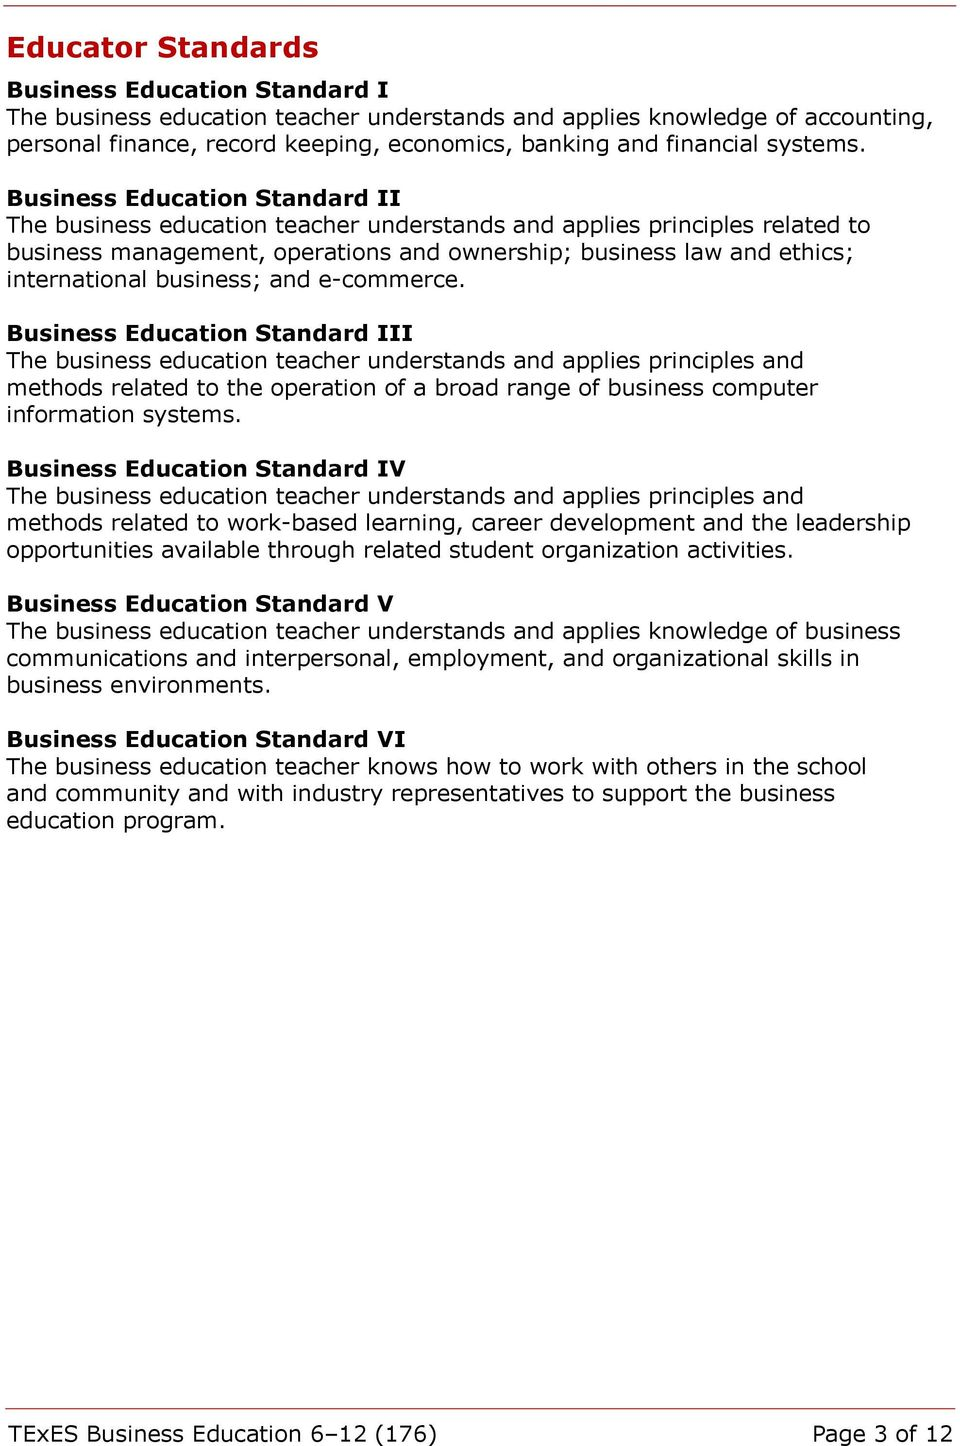 Business Education Standard II The business education teacher understands and applies principles related to business management, operations and ownership; business law and ethics; international